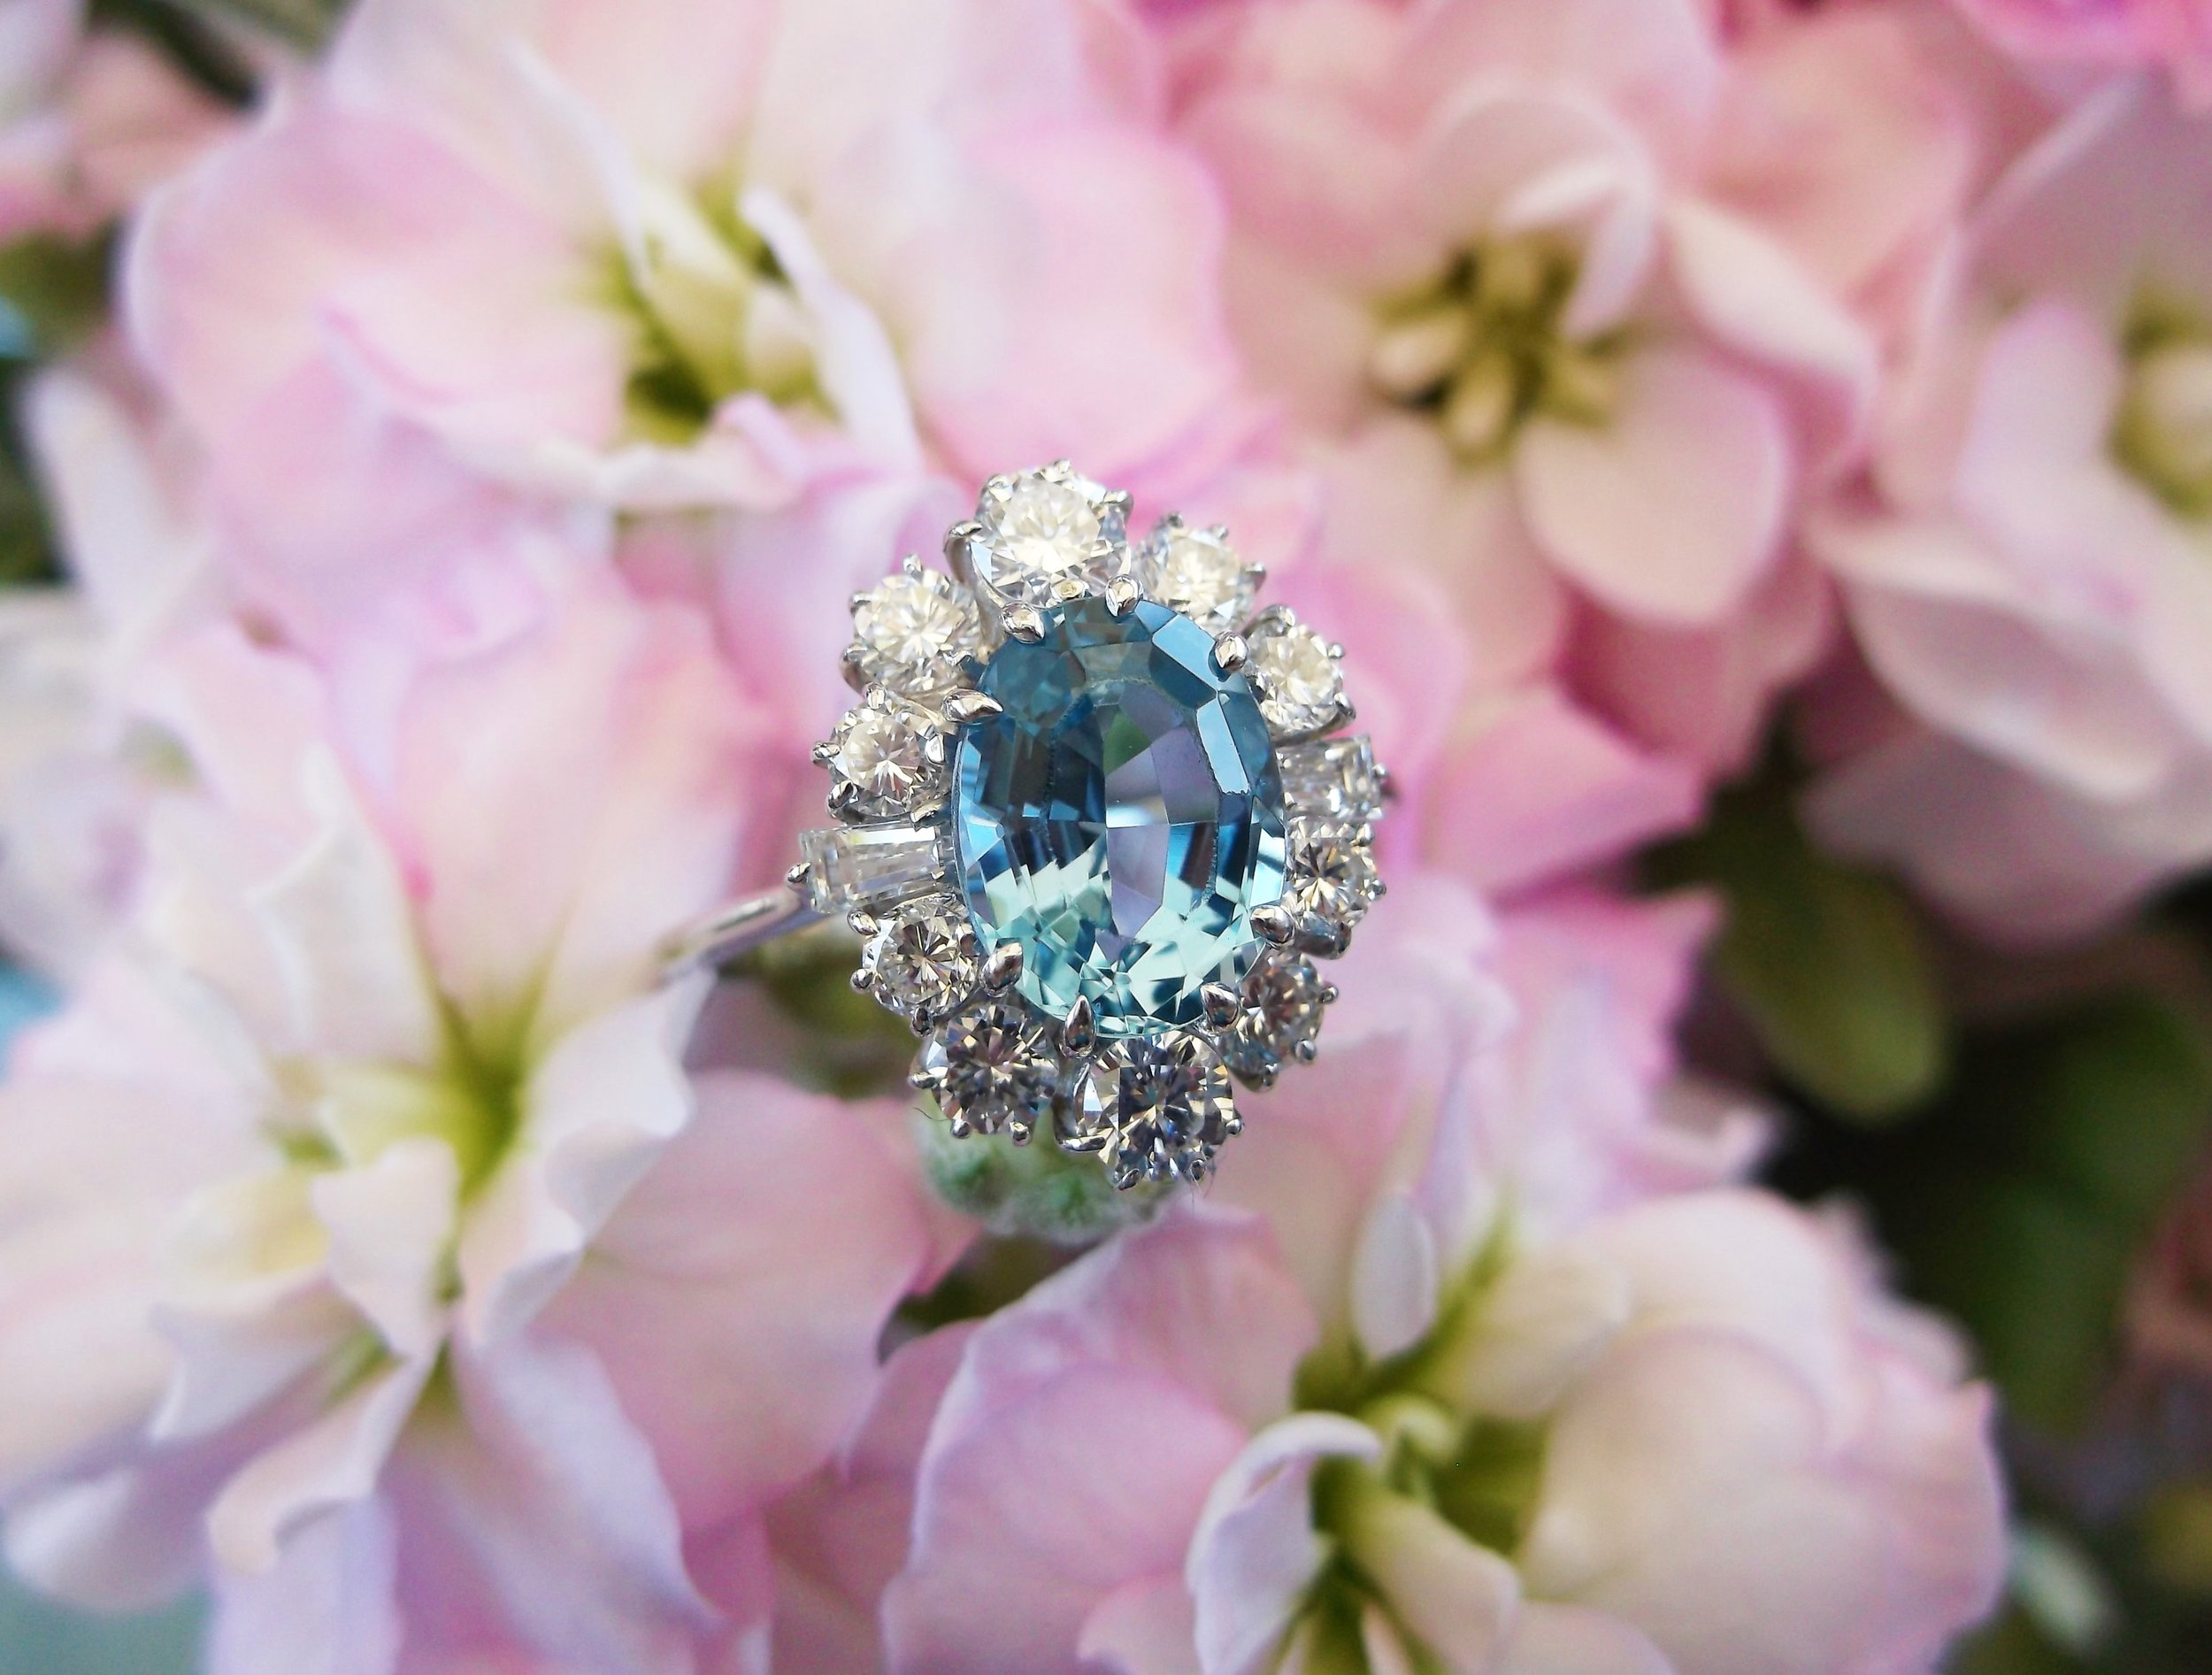 SOLD - Fanciful 1.75 carat aquamarine ring surrounded by 1.00 carat total weight in diamonds set in white gold.